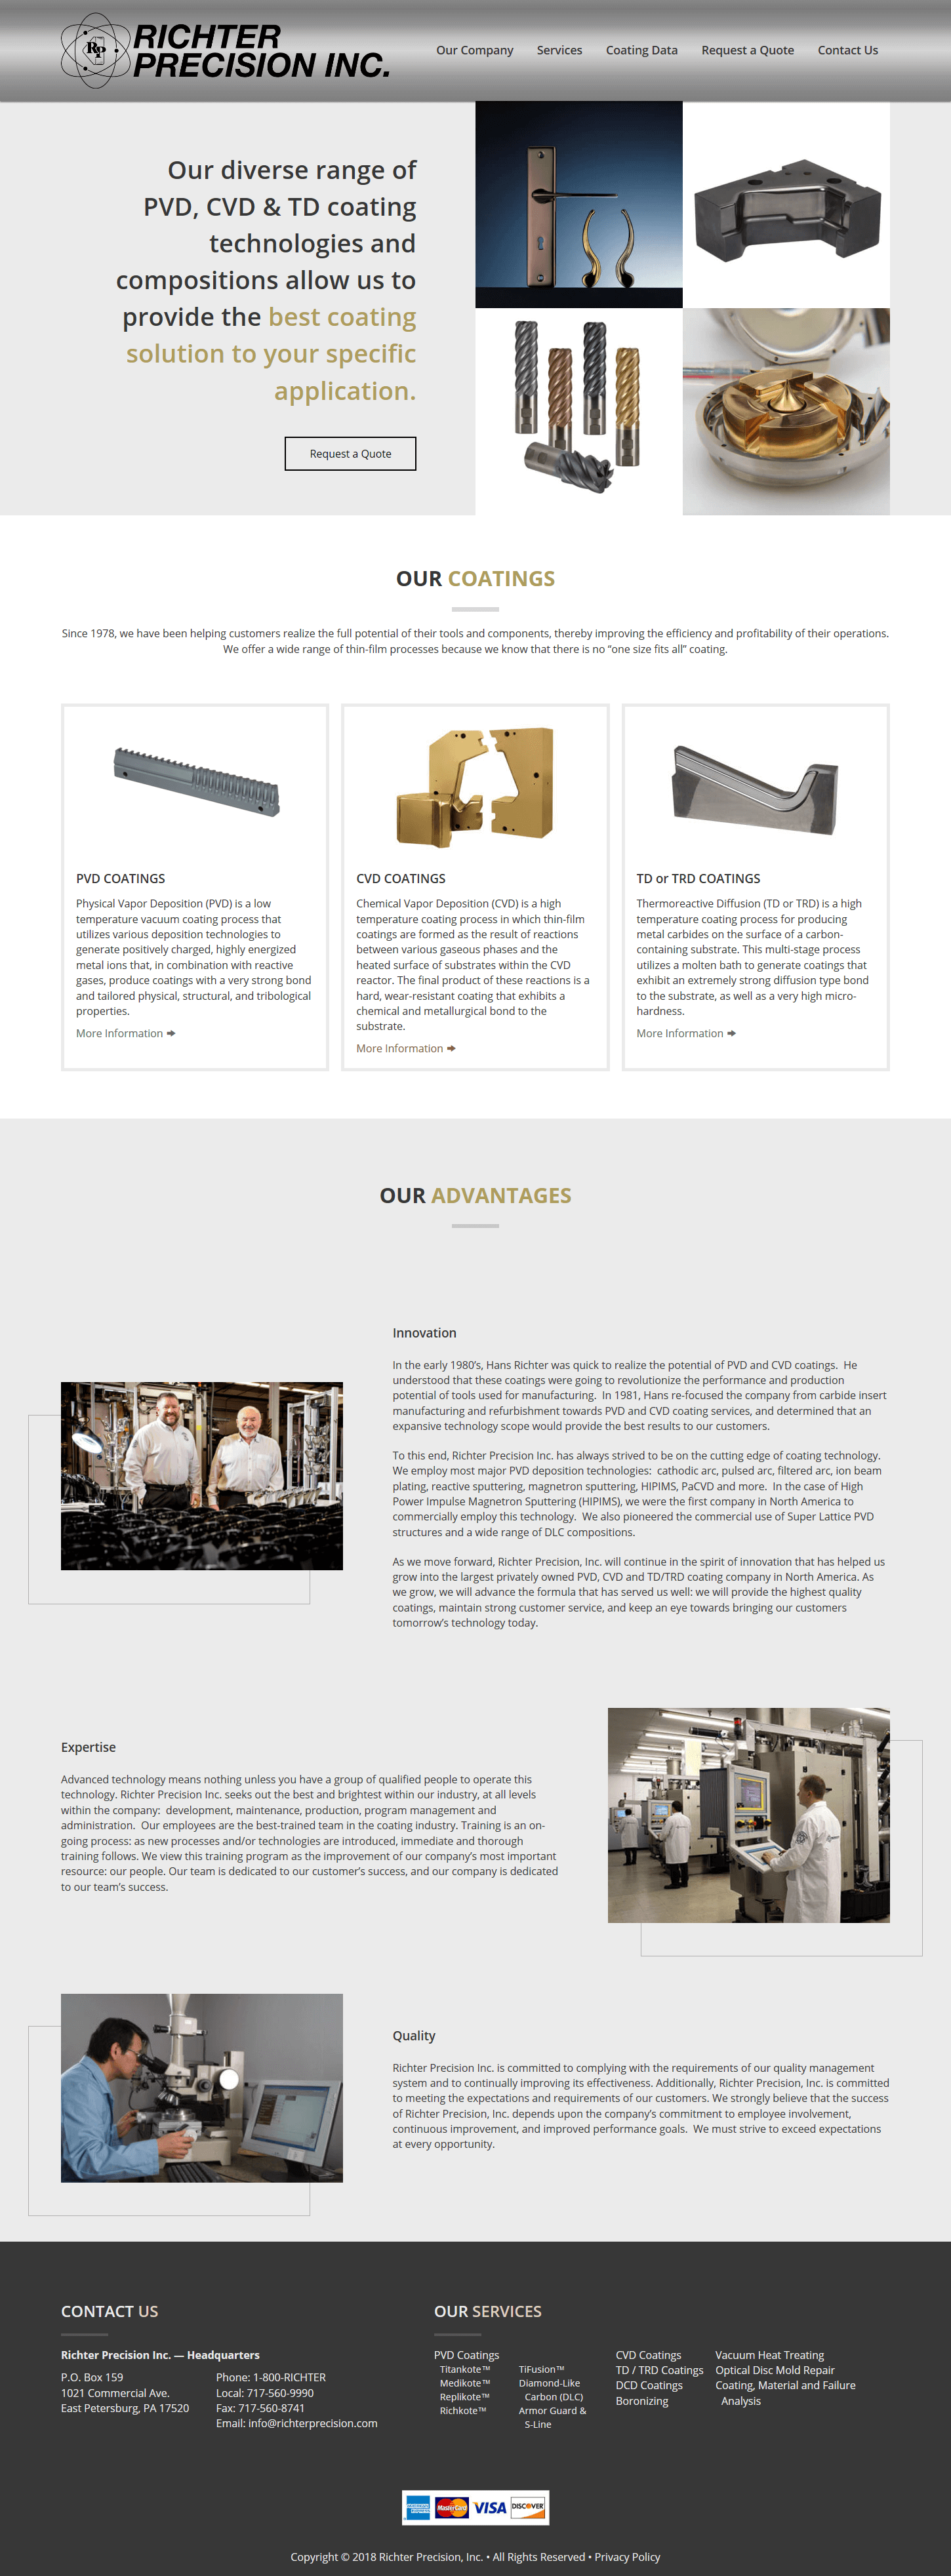 Richter Precision - Website by B2B Design & Development